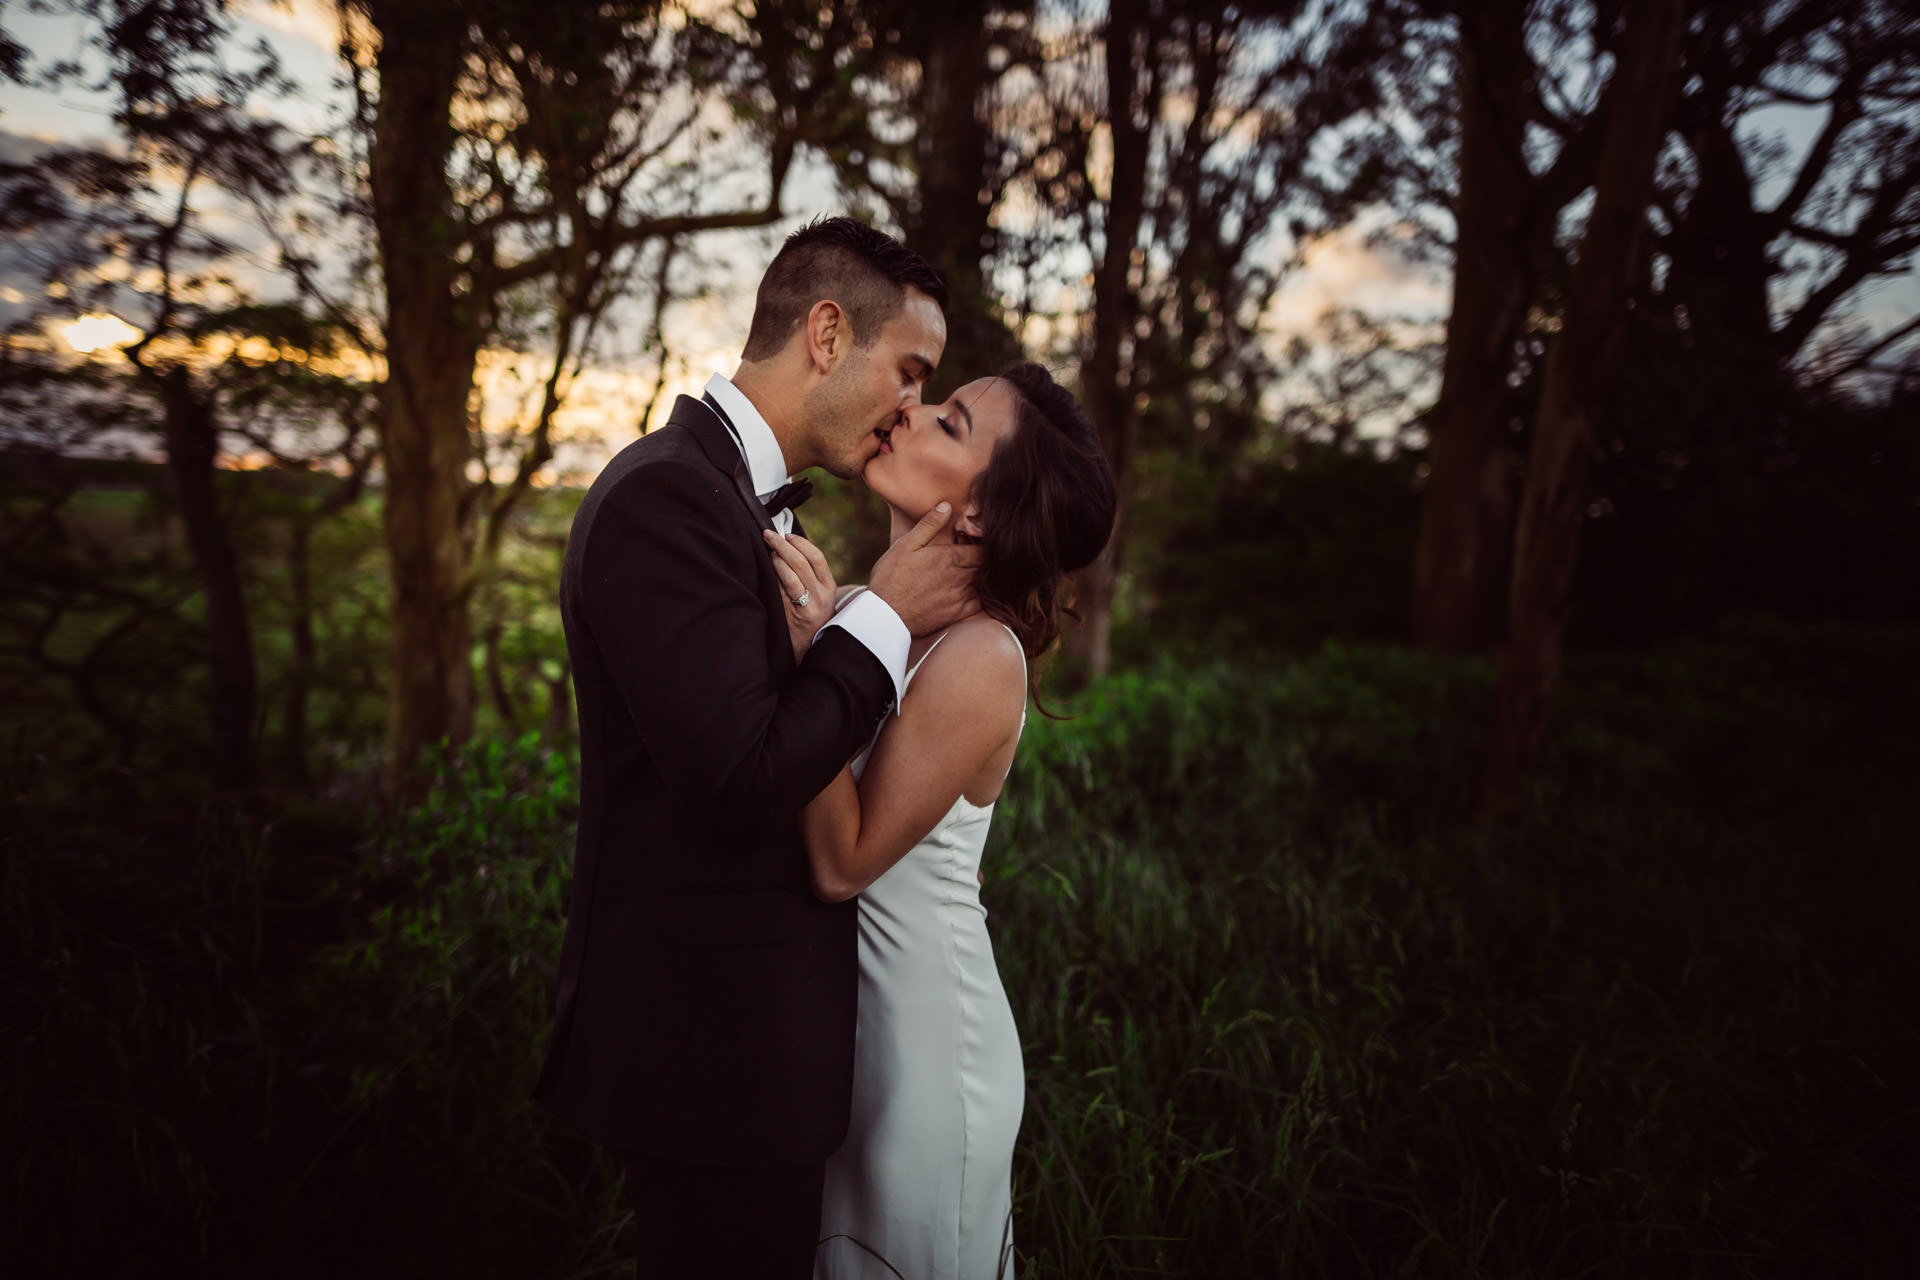 2_top_4994_the_official_photographers_wedding_styled_newzealand